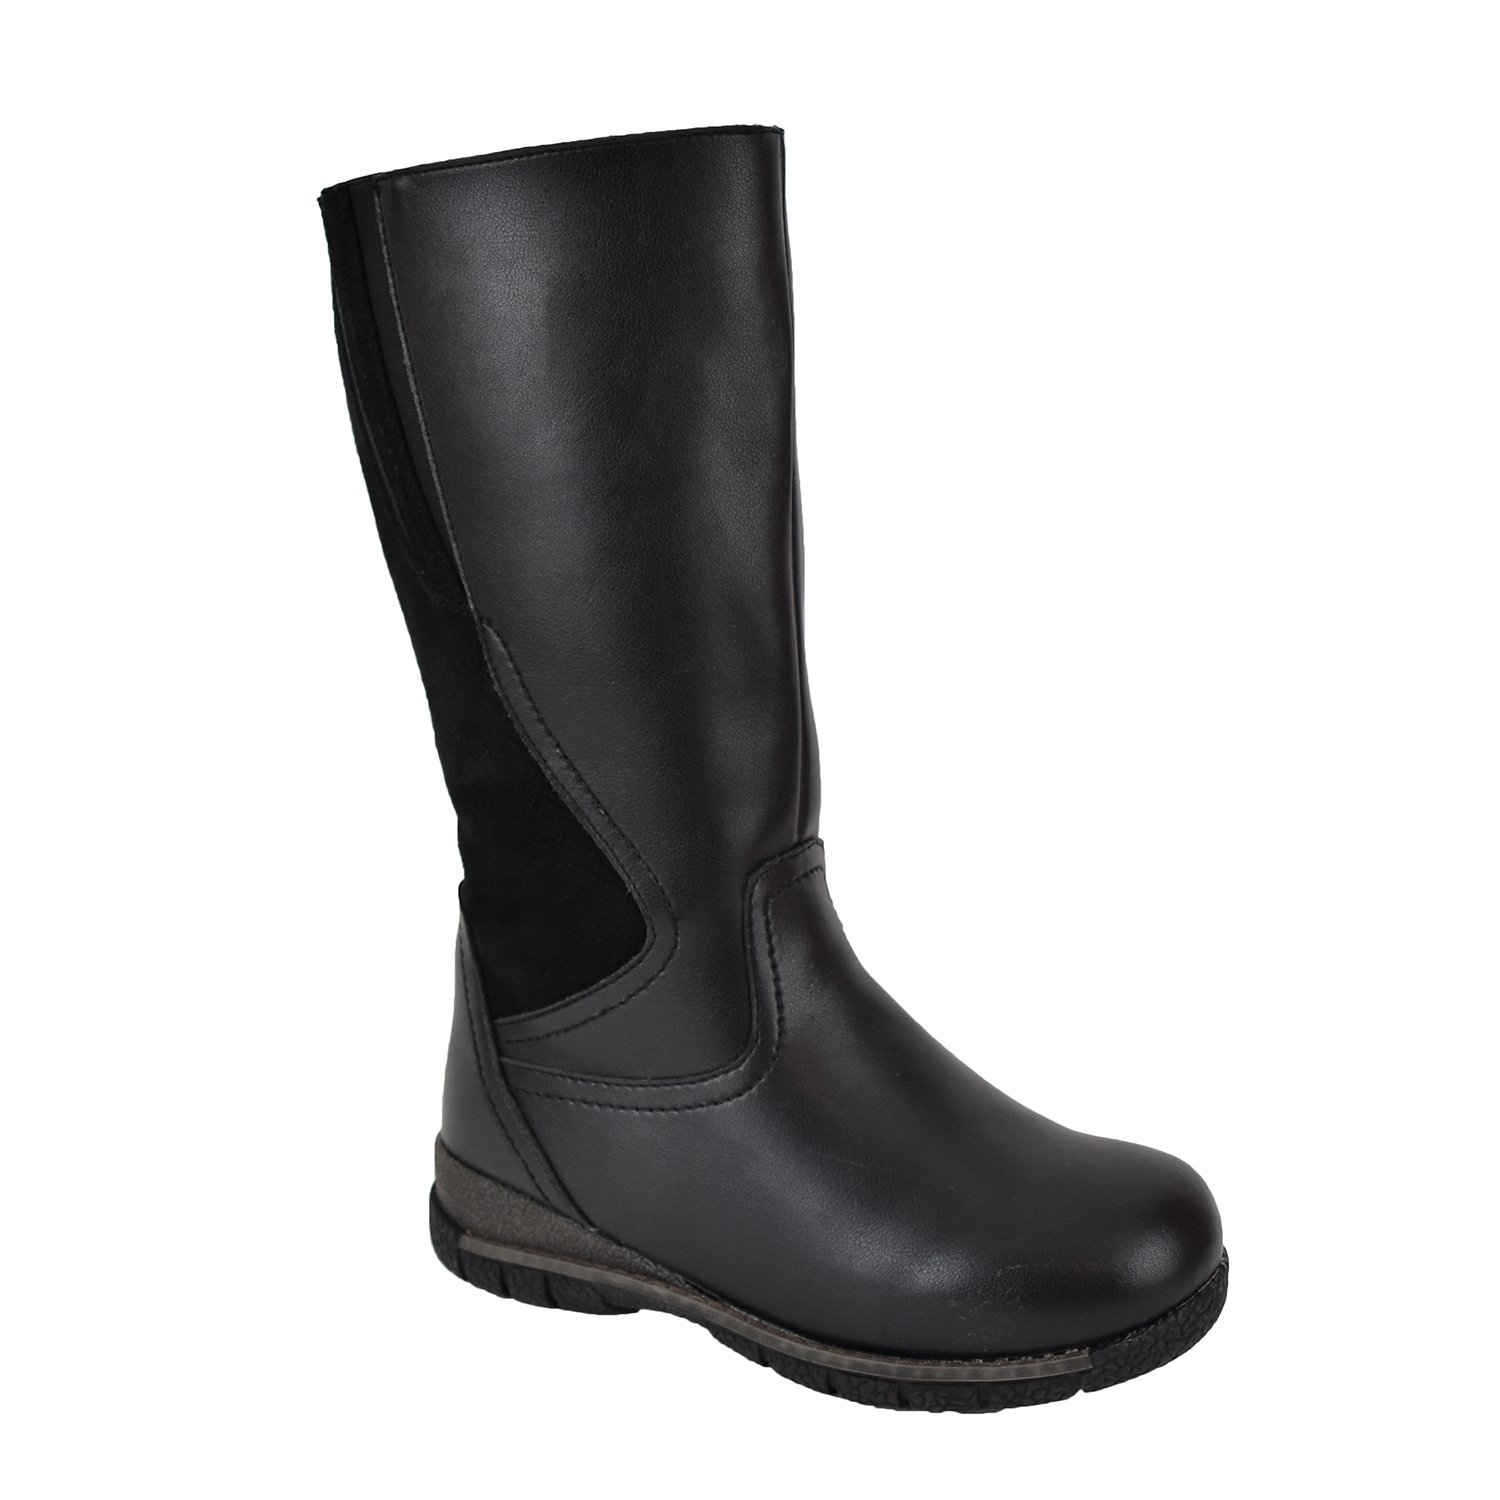 Comfy Moda Women's Winter Boots Waterproof 3M Thinsulate Wide Toe Toasty Warm Temperature Rating -25°F/-32°C Alberta Black